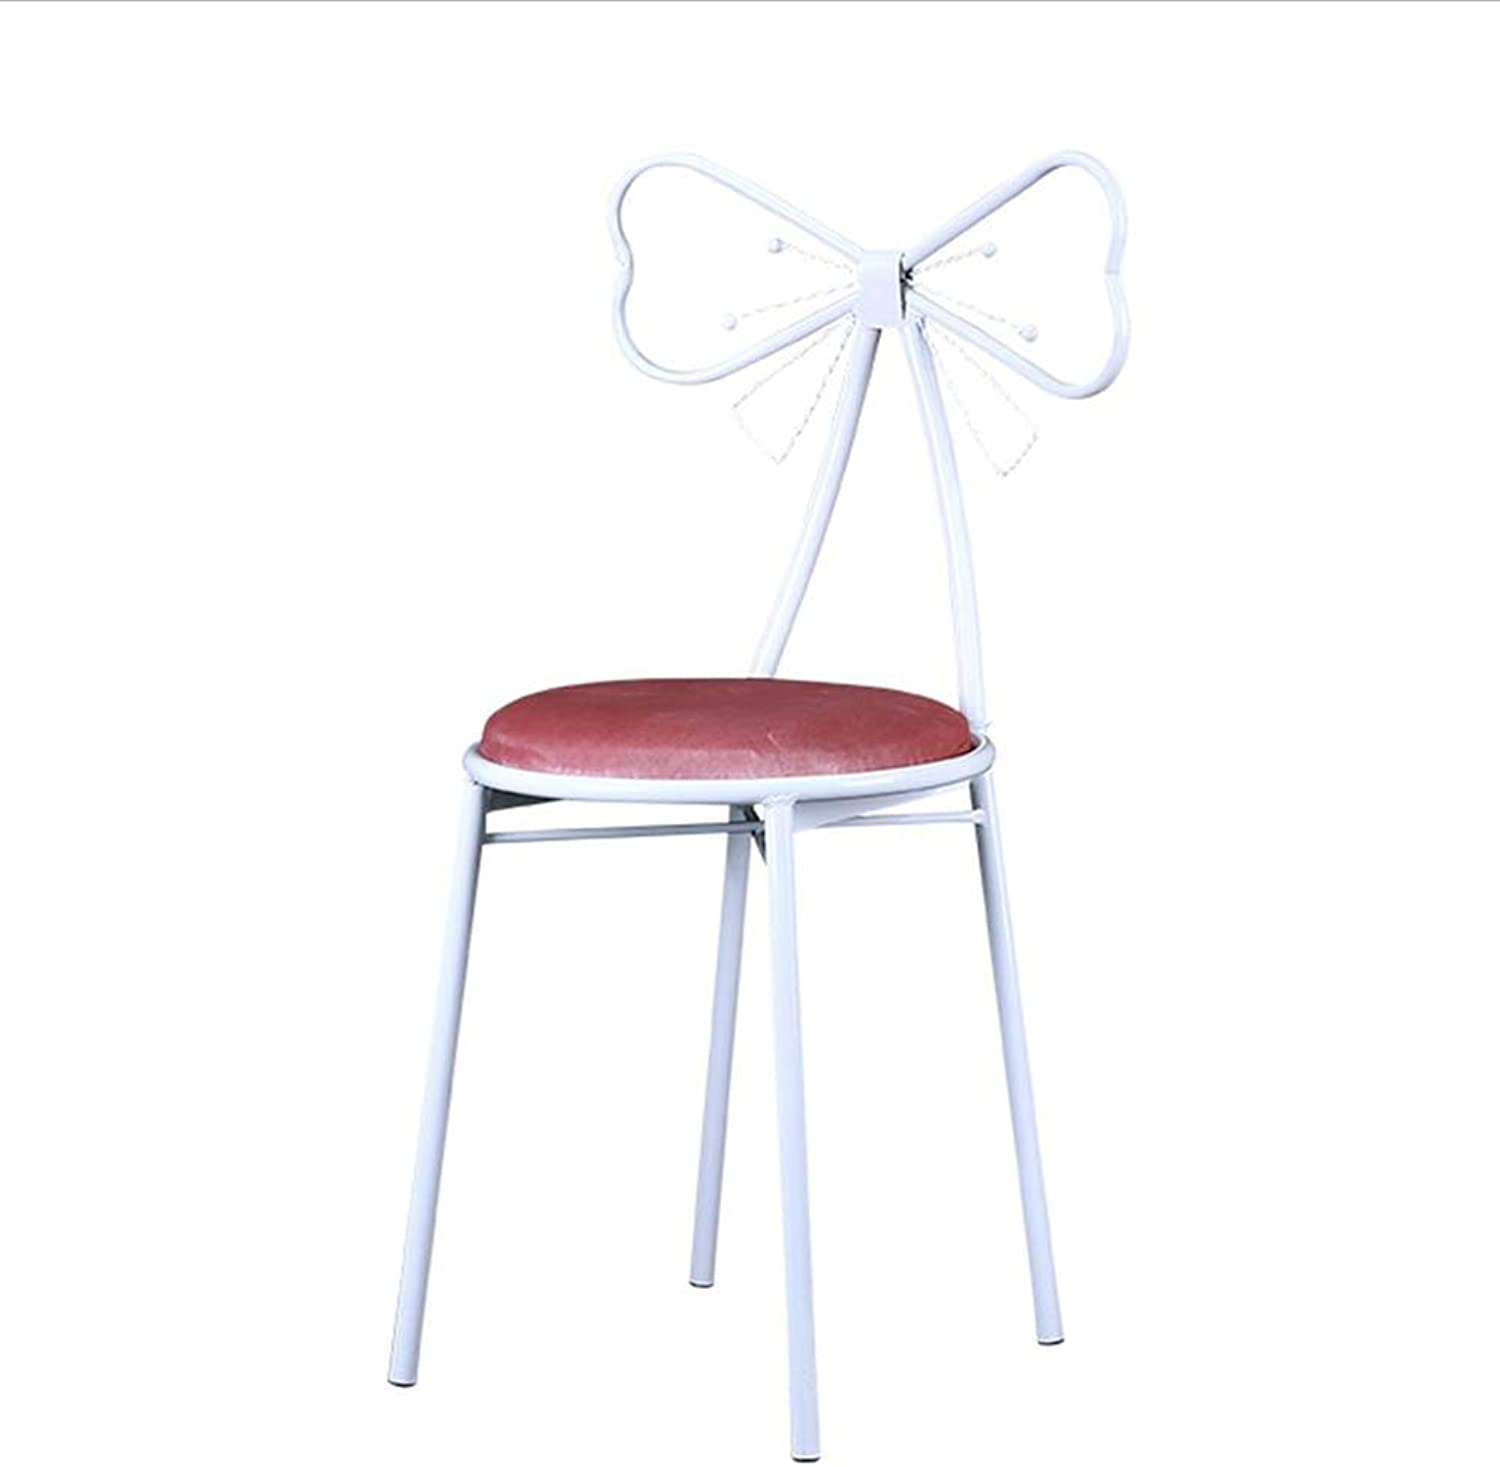 Chair Dining Chairs Seat Chair Bow Back Aluminum Chair Legs Stackable Anti-Slip Mat Reinforcing Bracket Restaurant Office Household FENPING (color   D)